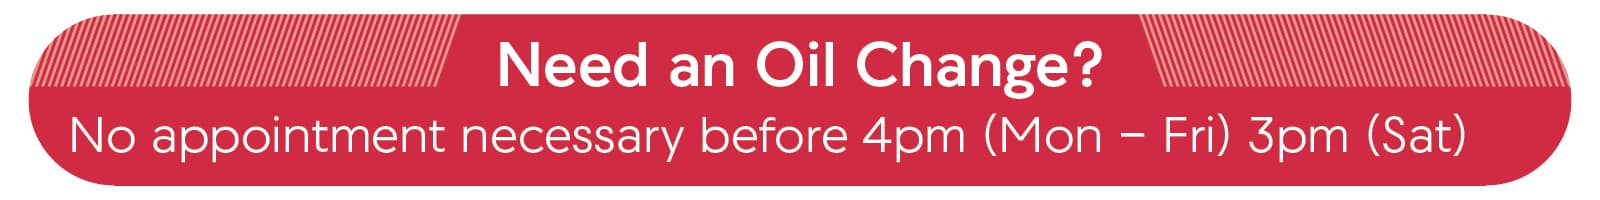 No appointment necessary for oil changes before 4pm.